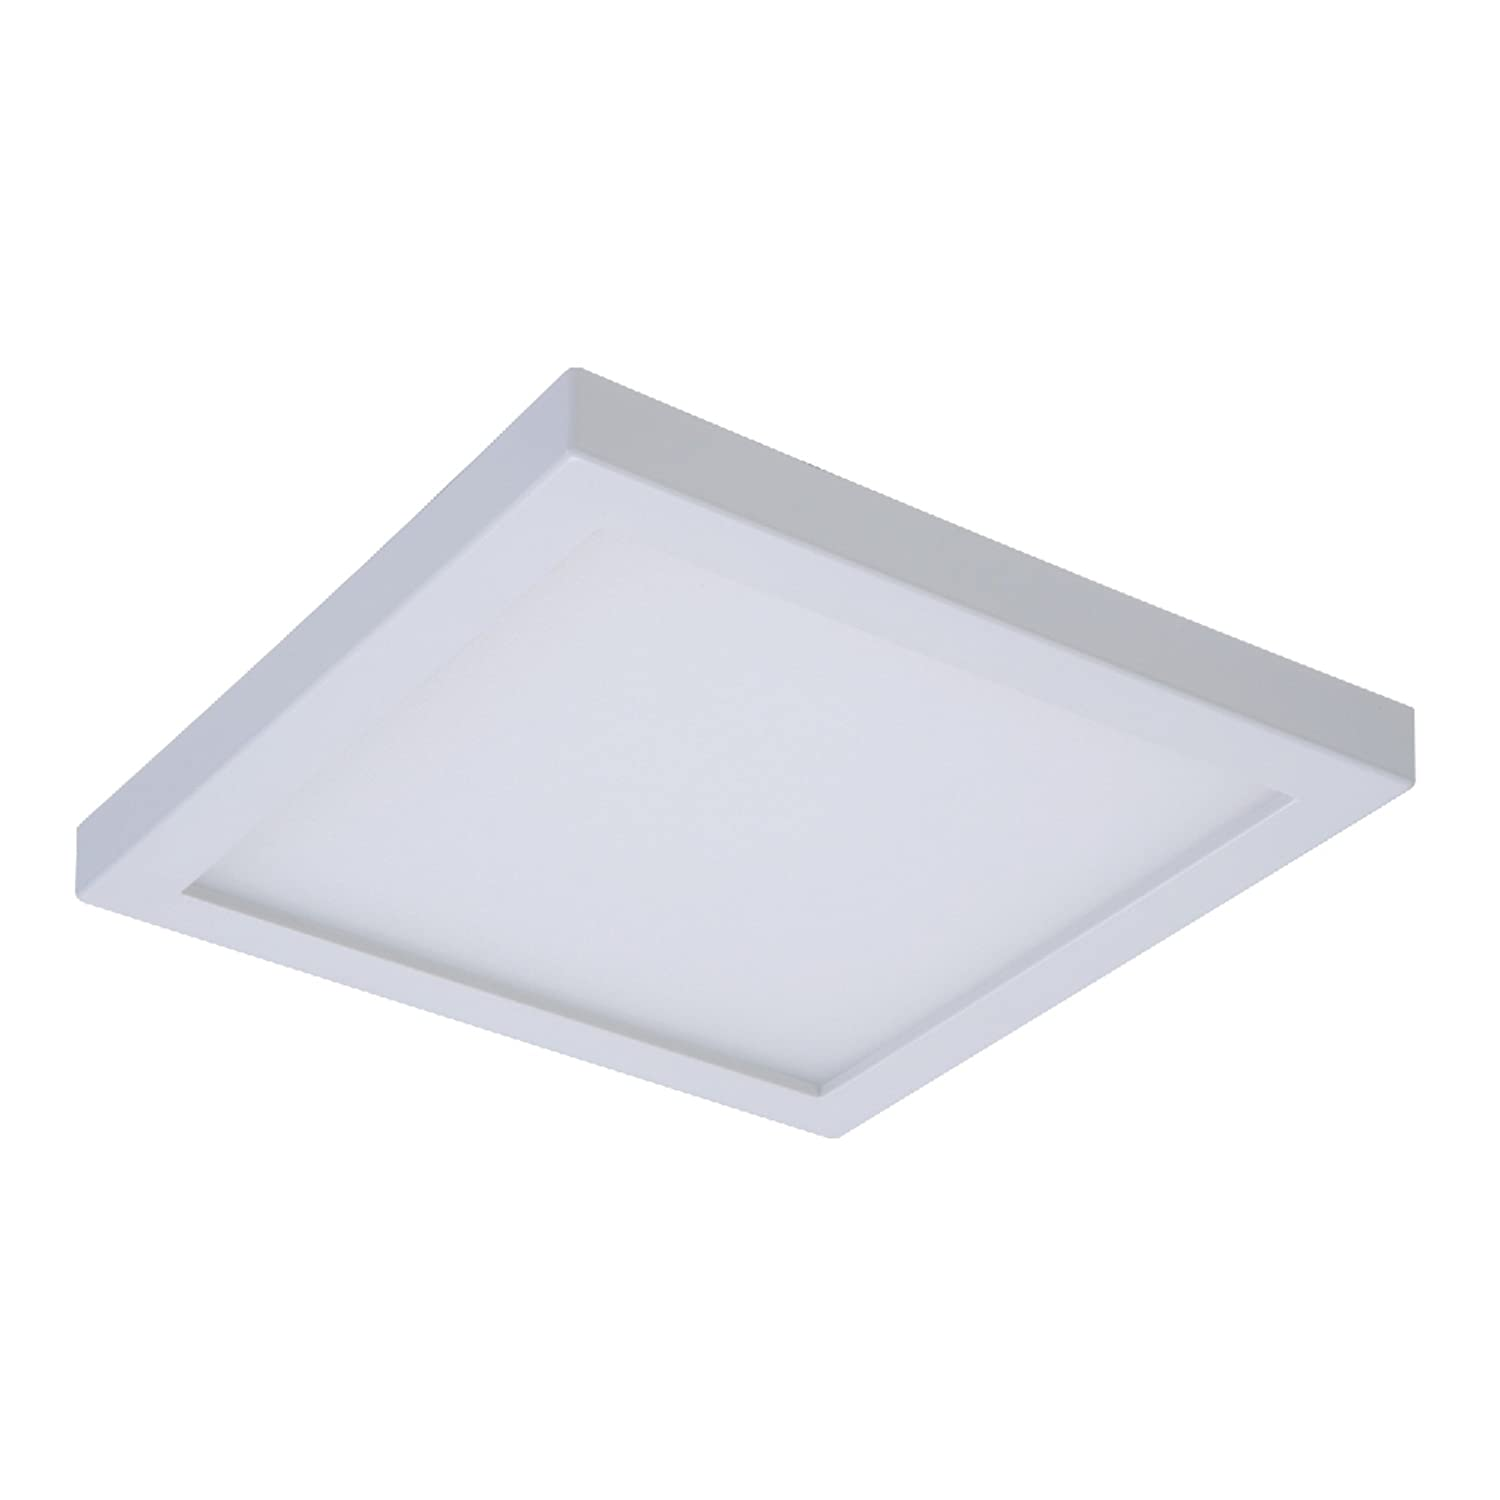 Halo smd6s6930wh smd 3000k integrated led surface mount recessed square trim 5 in 6 in white